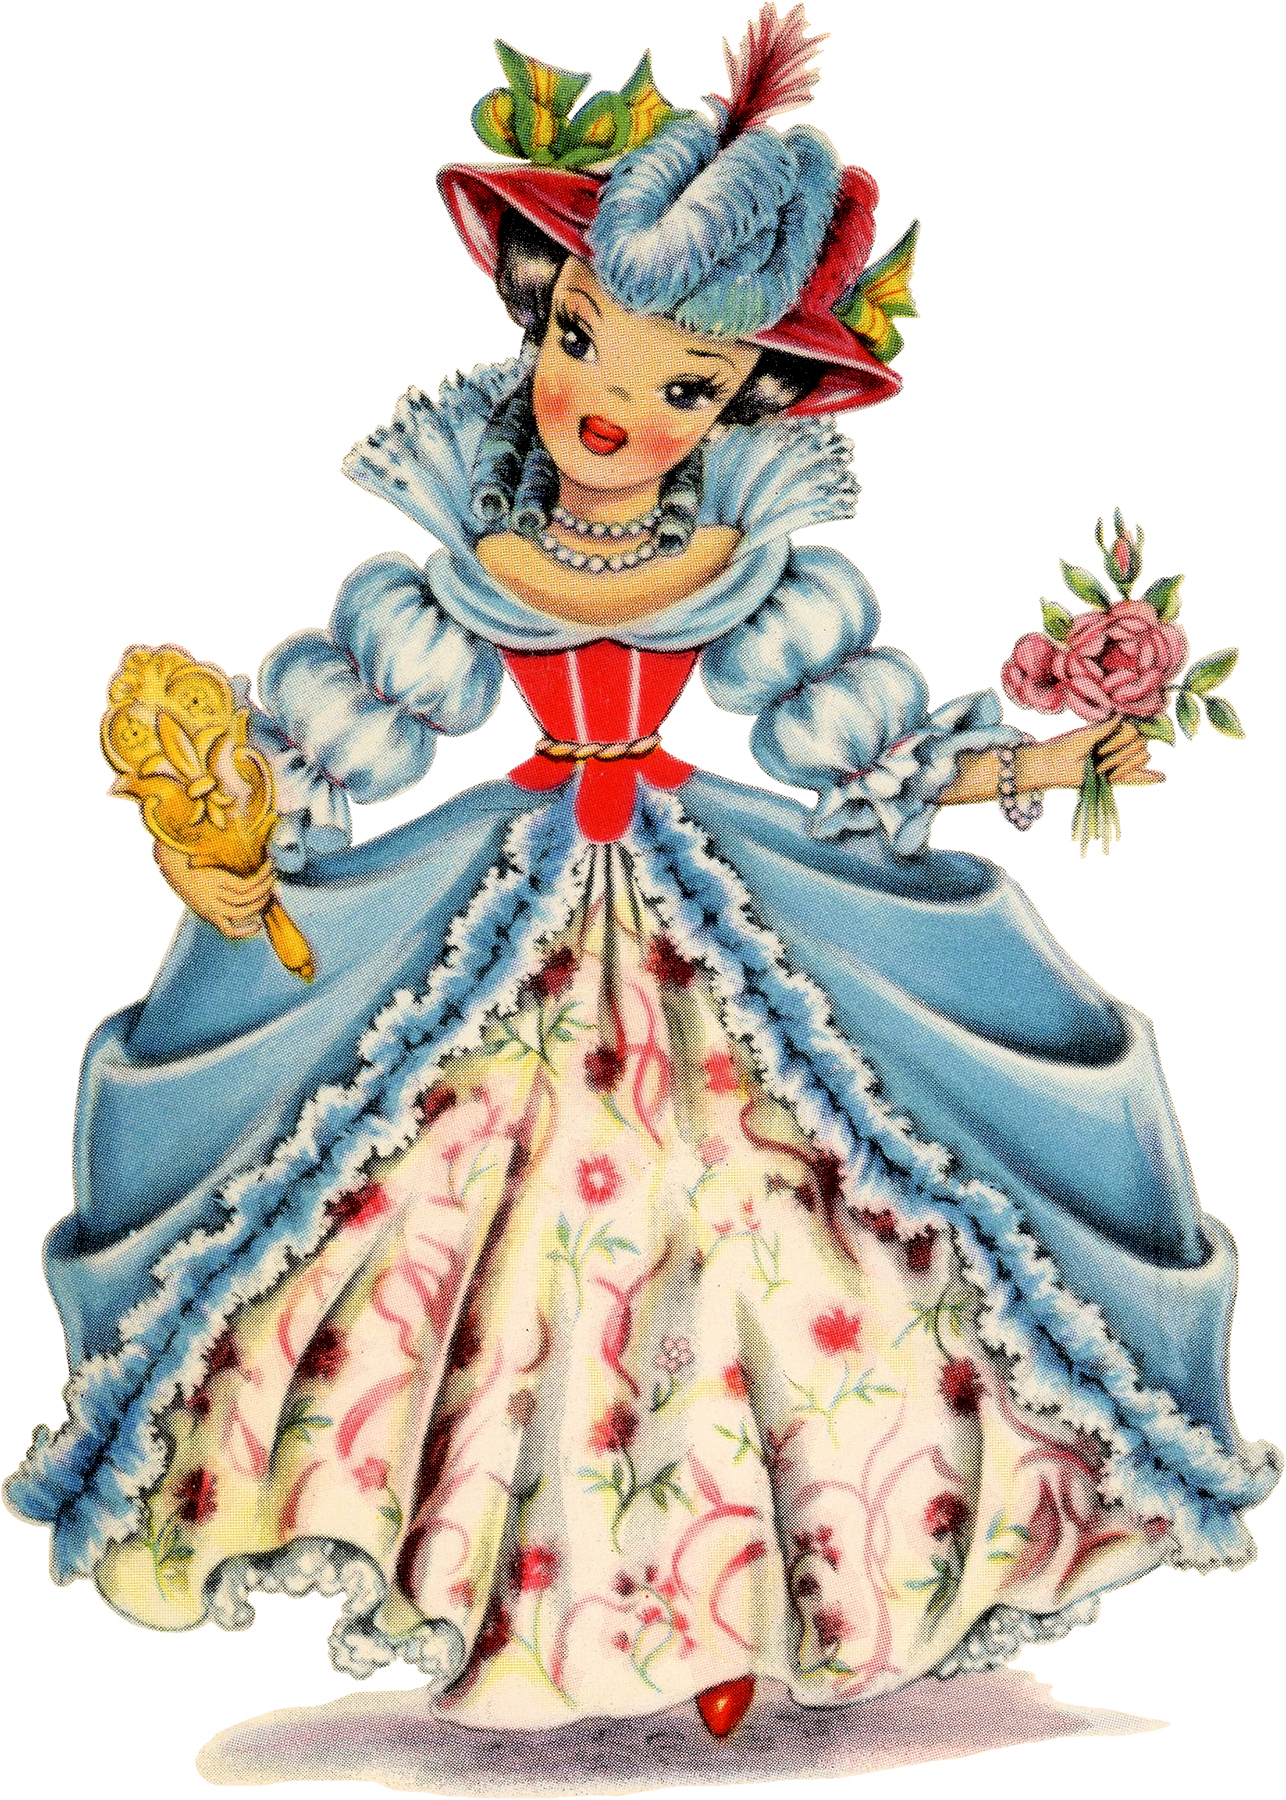 19 Retro Dolls of the World! - The Graphics Fairy